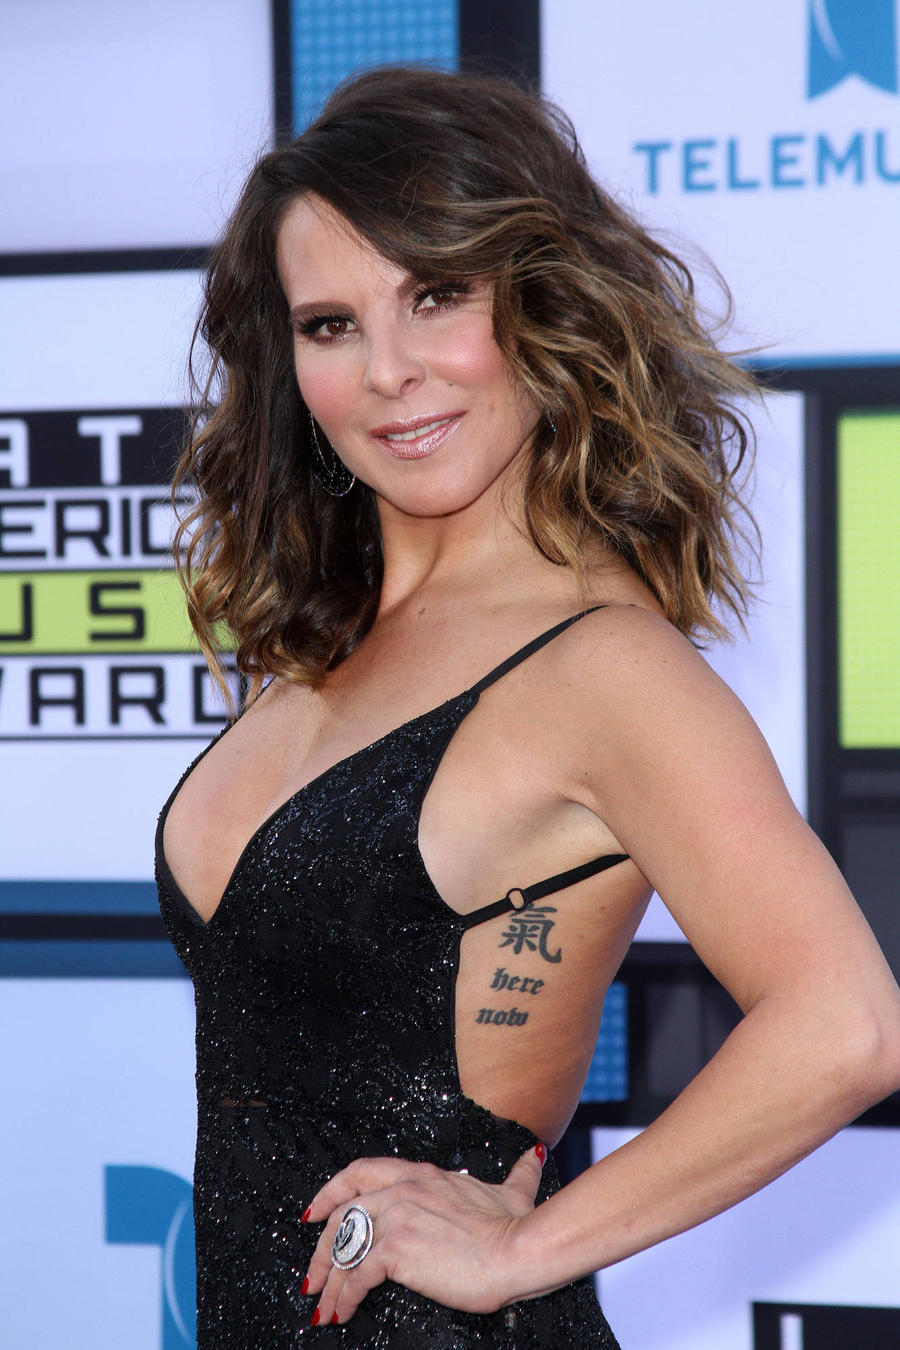 Kate Del Castillo: 'I Still Want To Make El Chapo Film'